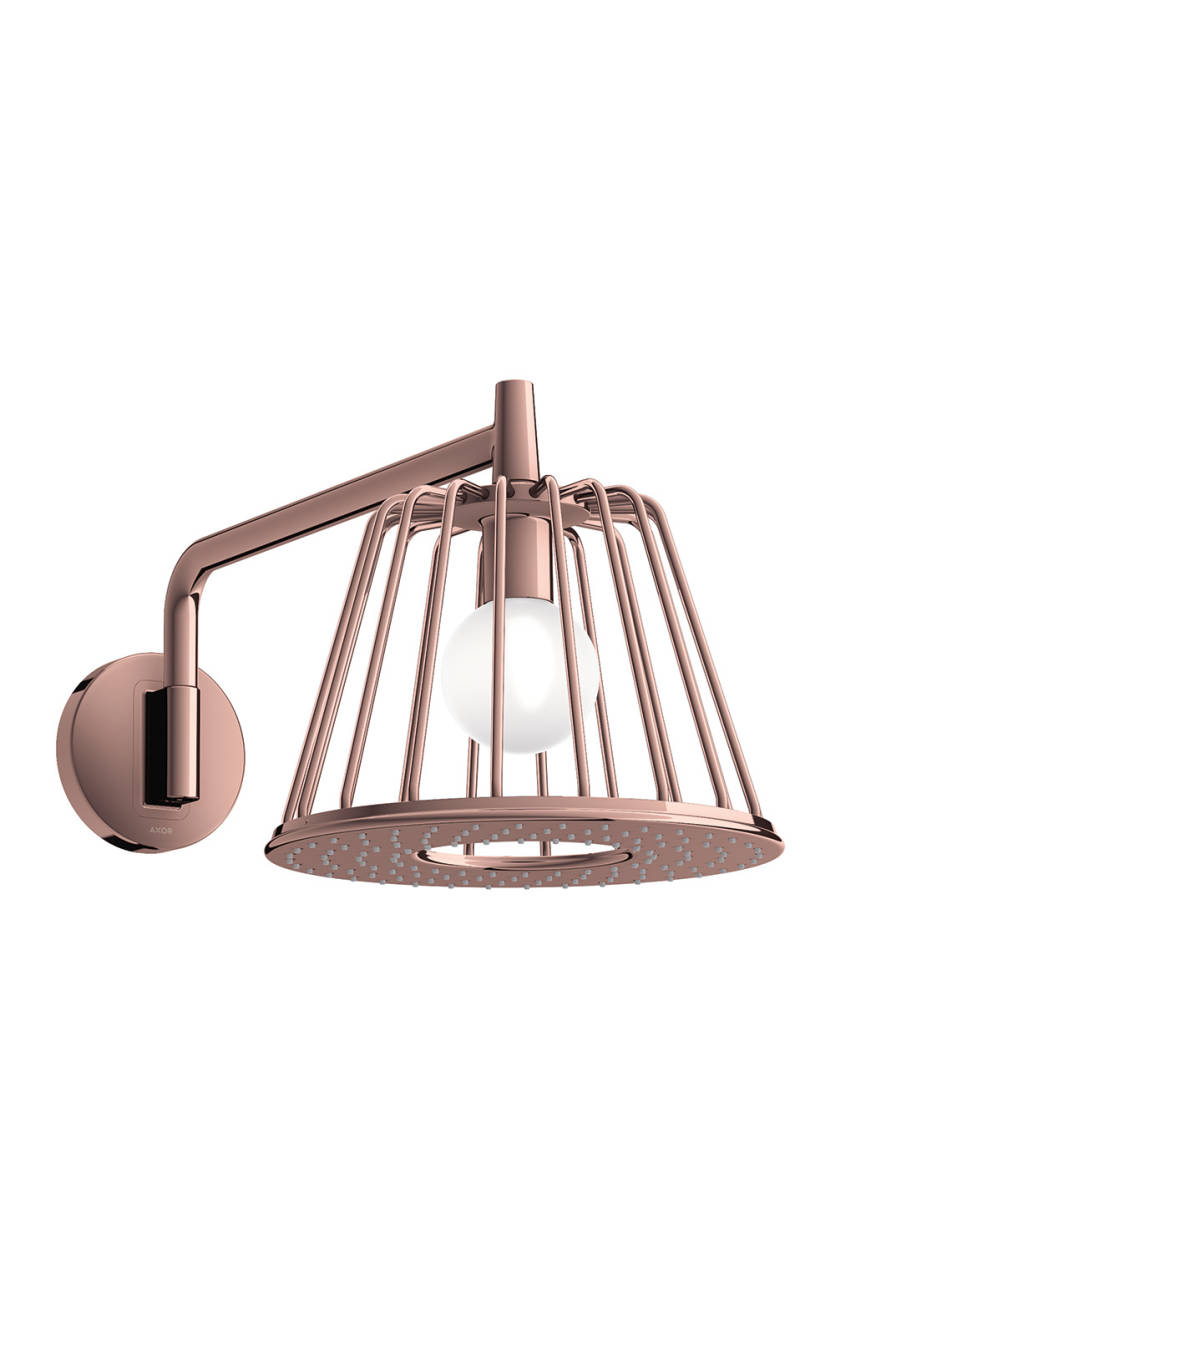 LampShower 275 1jet with shower arm, Polished Red Gold, 26031300